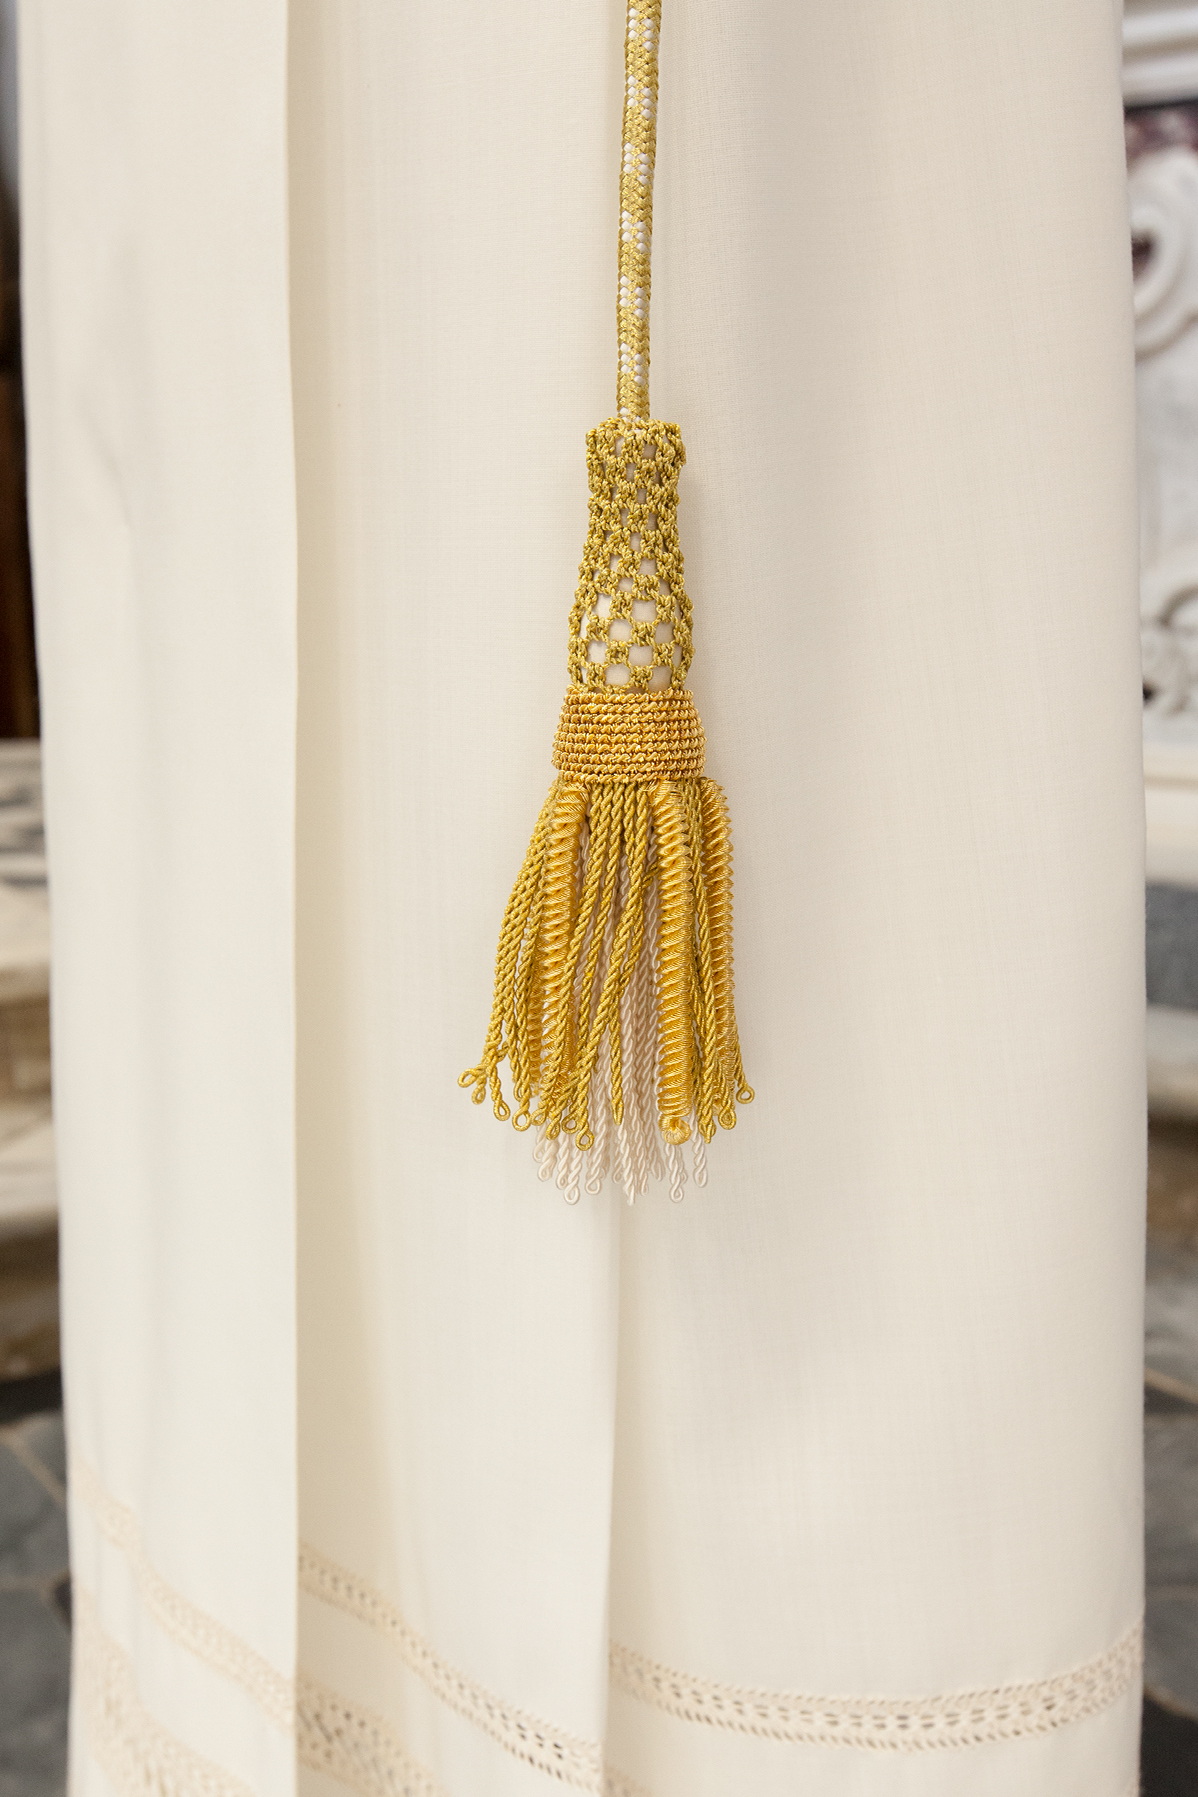 Gold braided cincture for priest